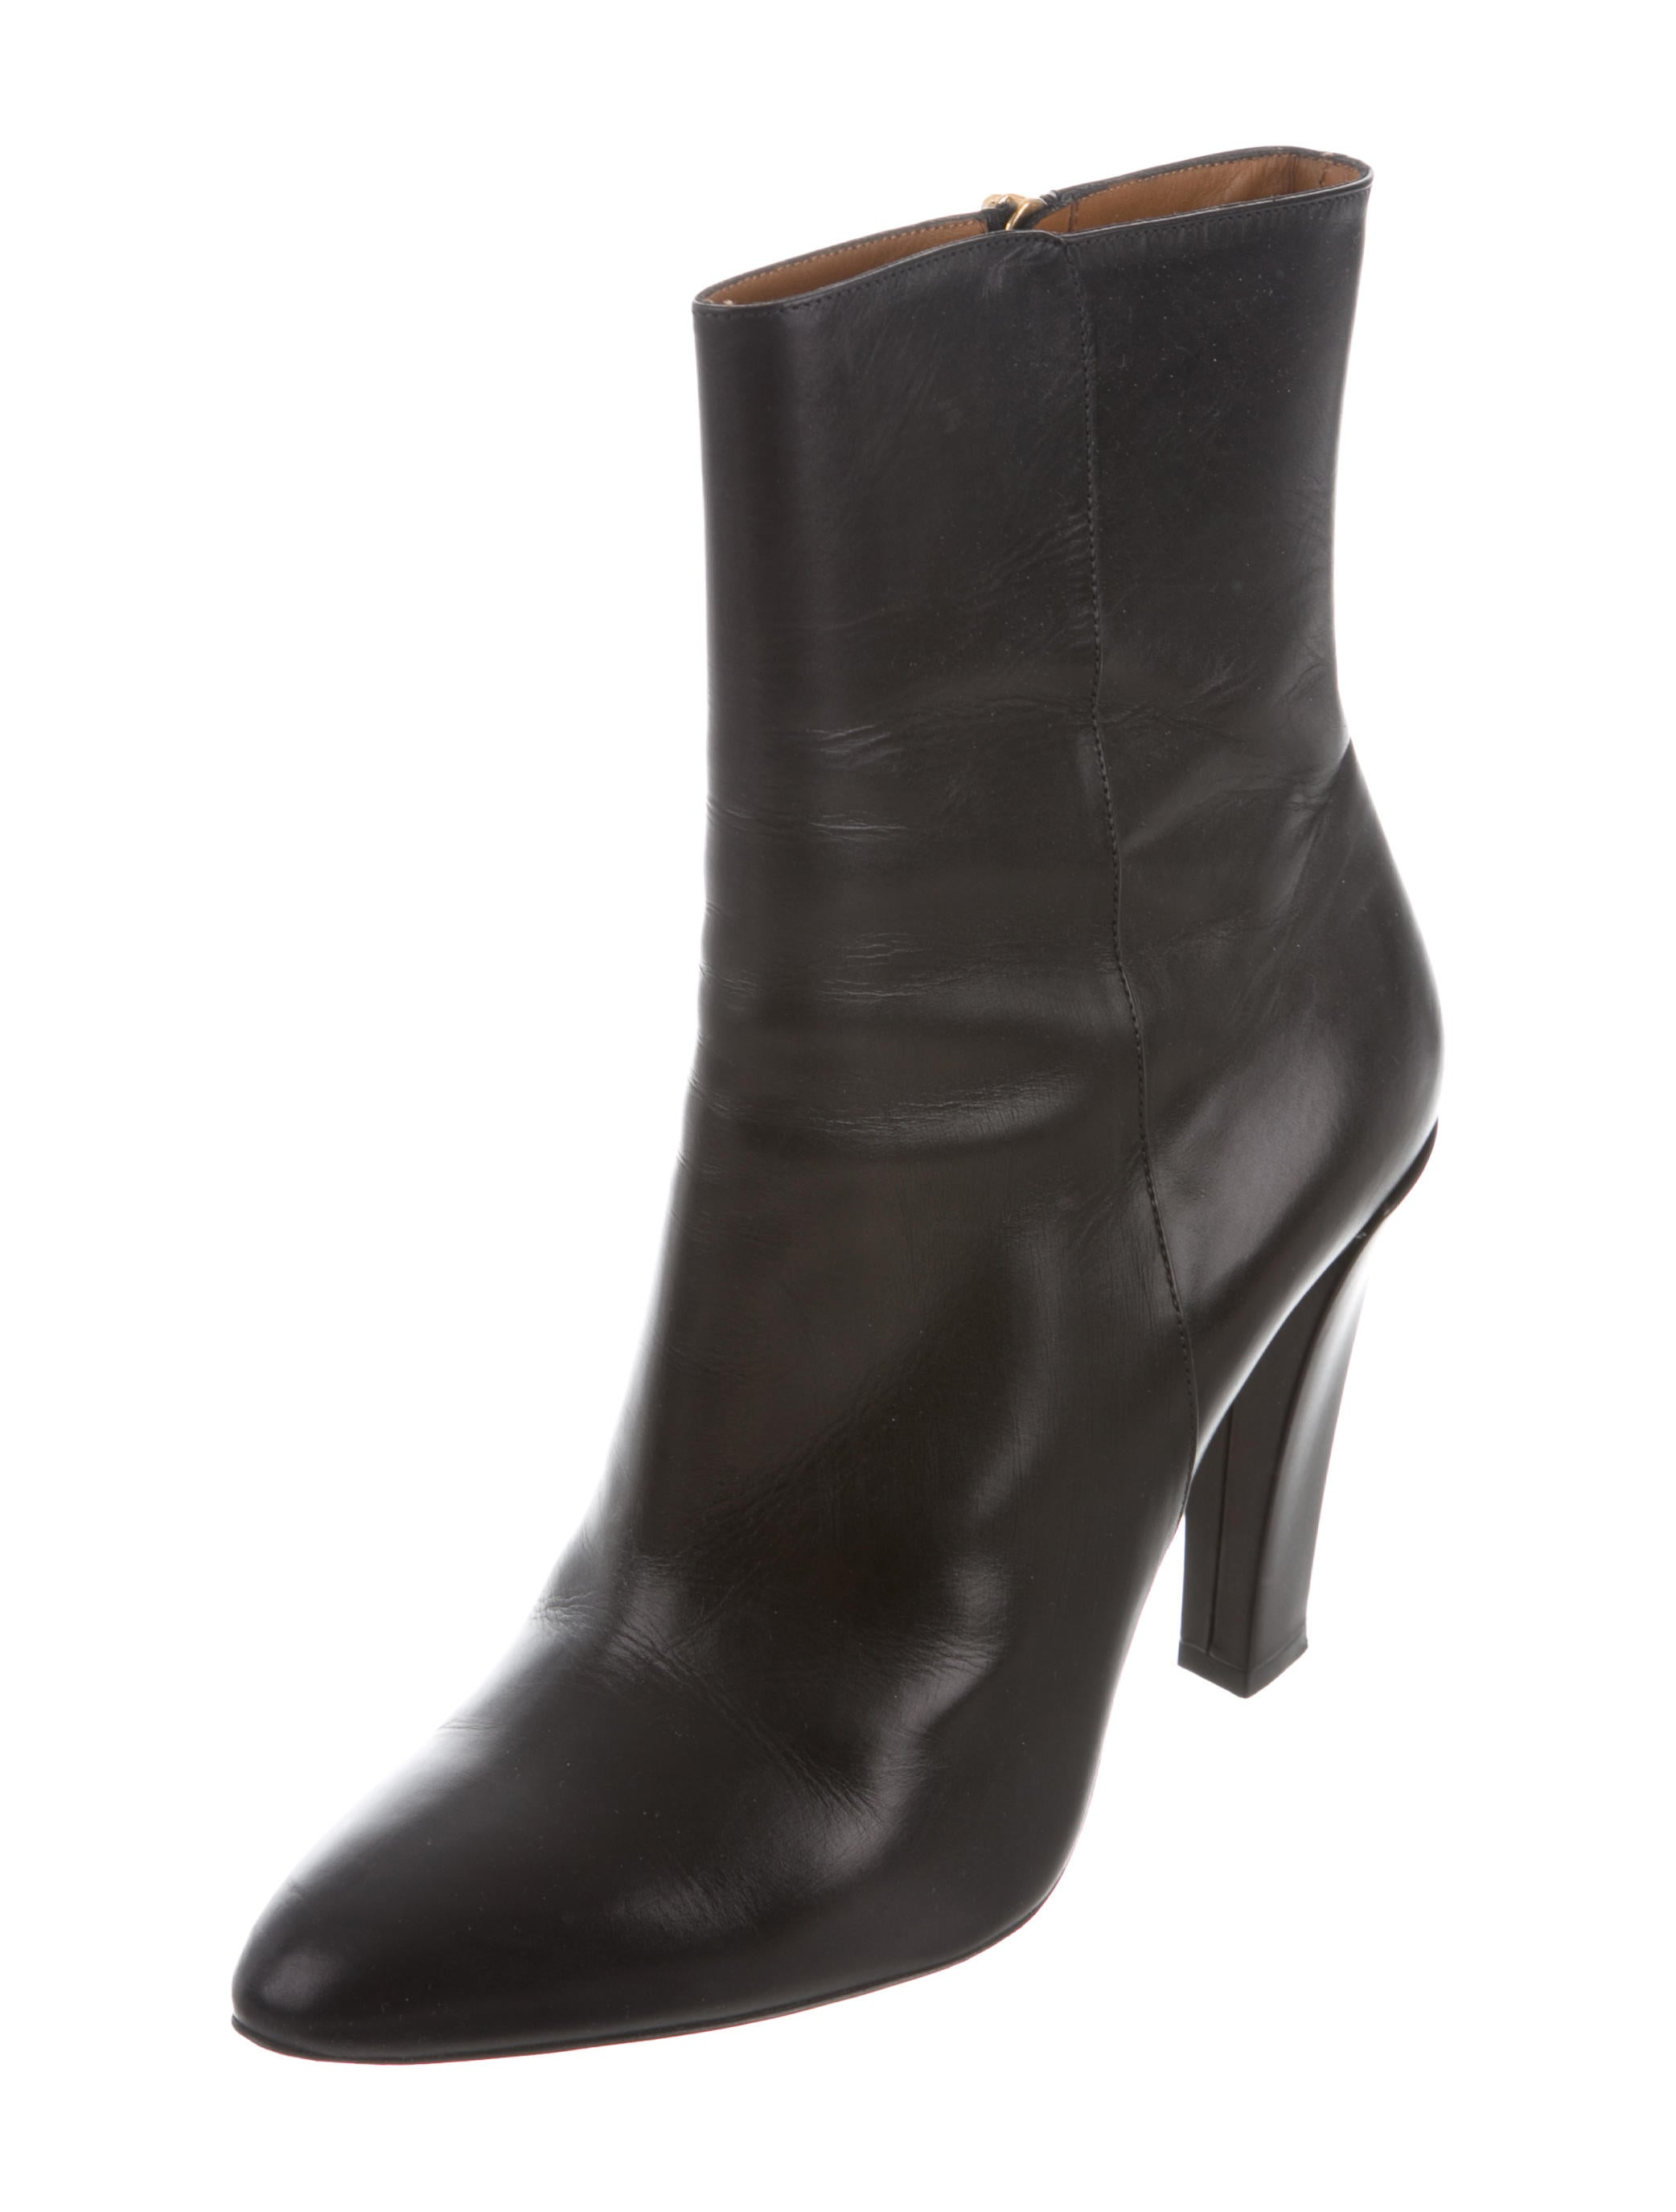 Ralph Lauren Collection Leather Pointed-Toe Ankle Boots buy cheap recommend good selling for sale J0igoMmsY